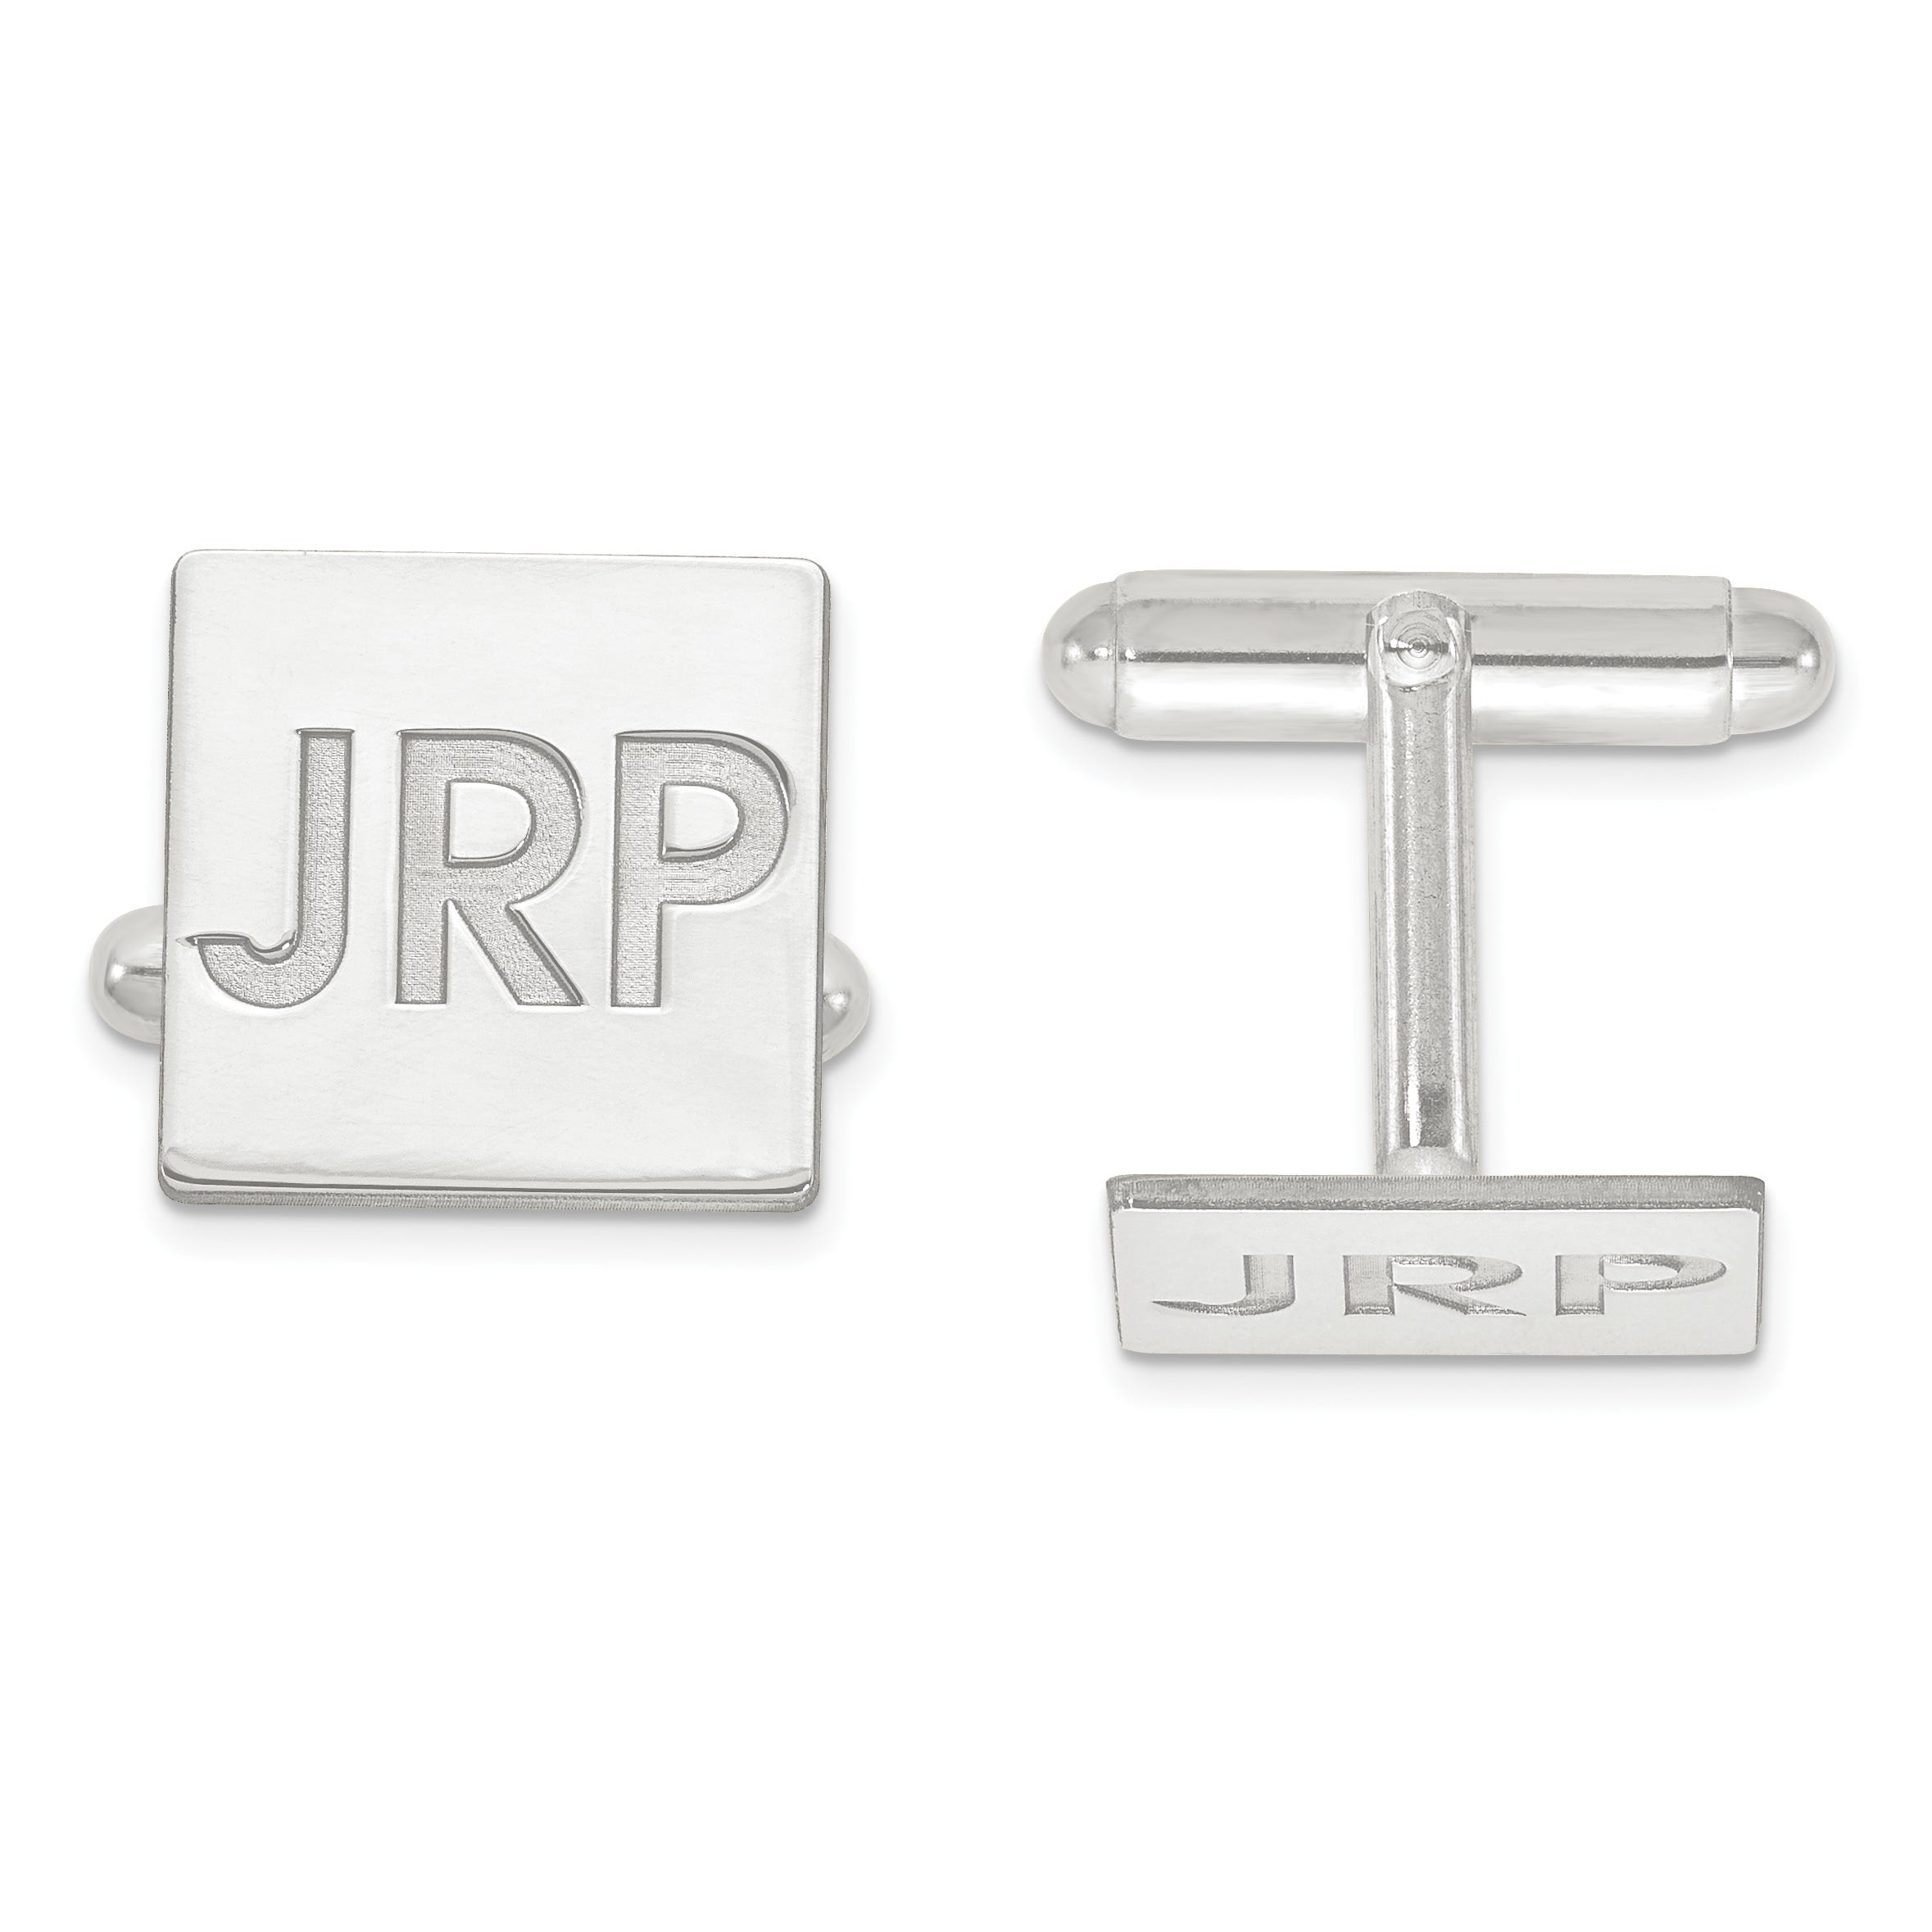 Recessed Letters Square Monogram Cuff Links in Sterling Silver (up to 3 letters)